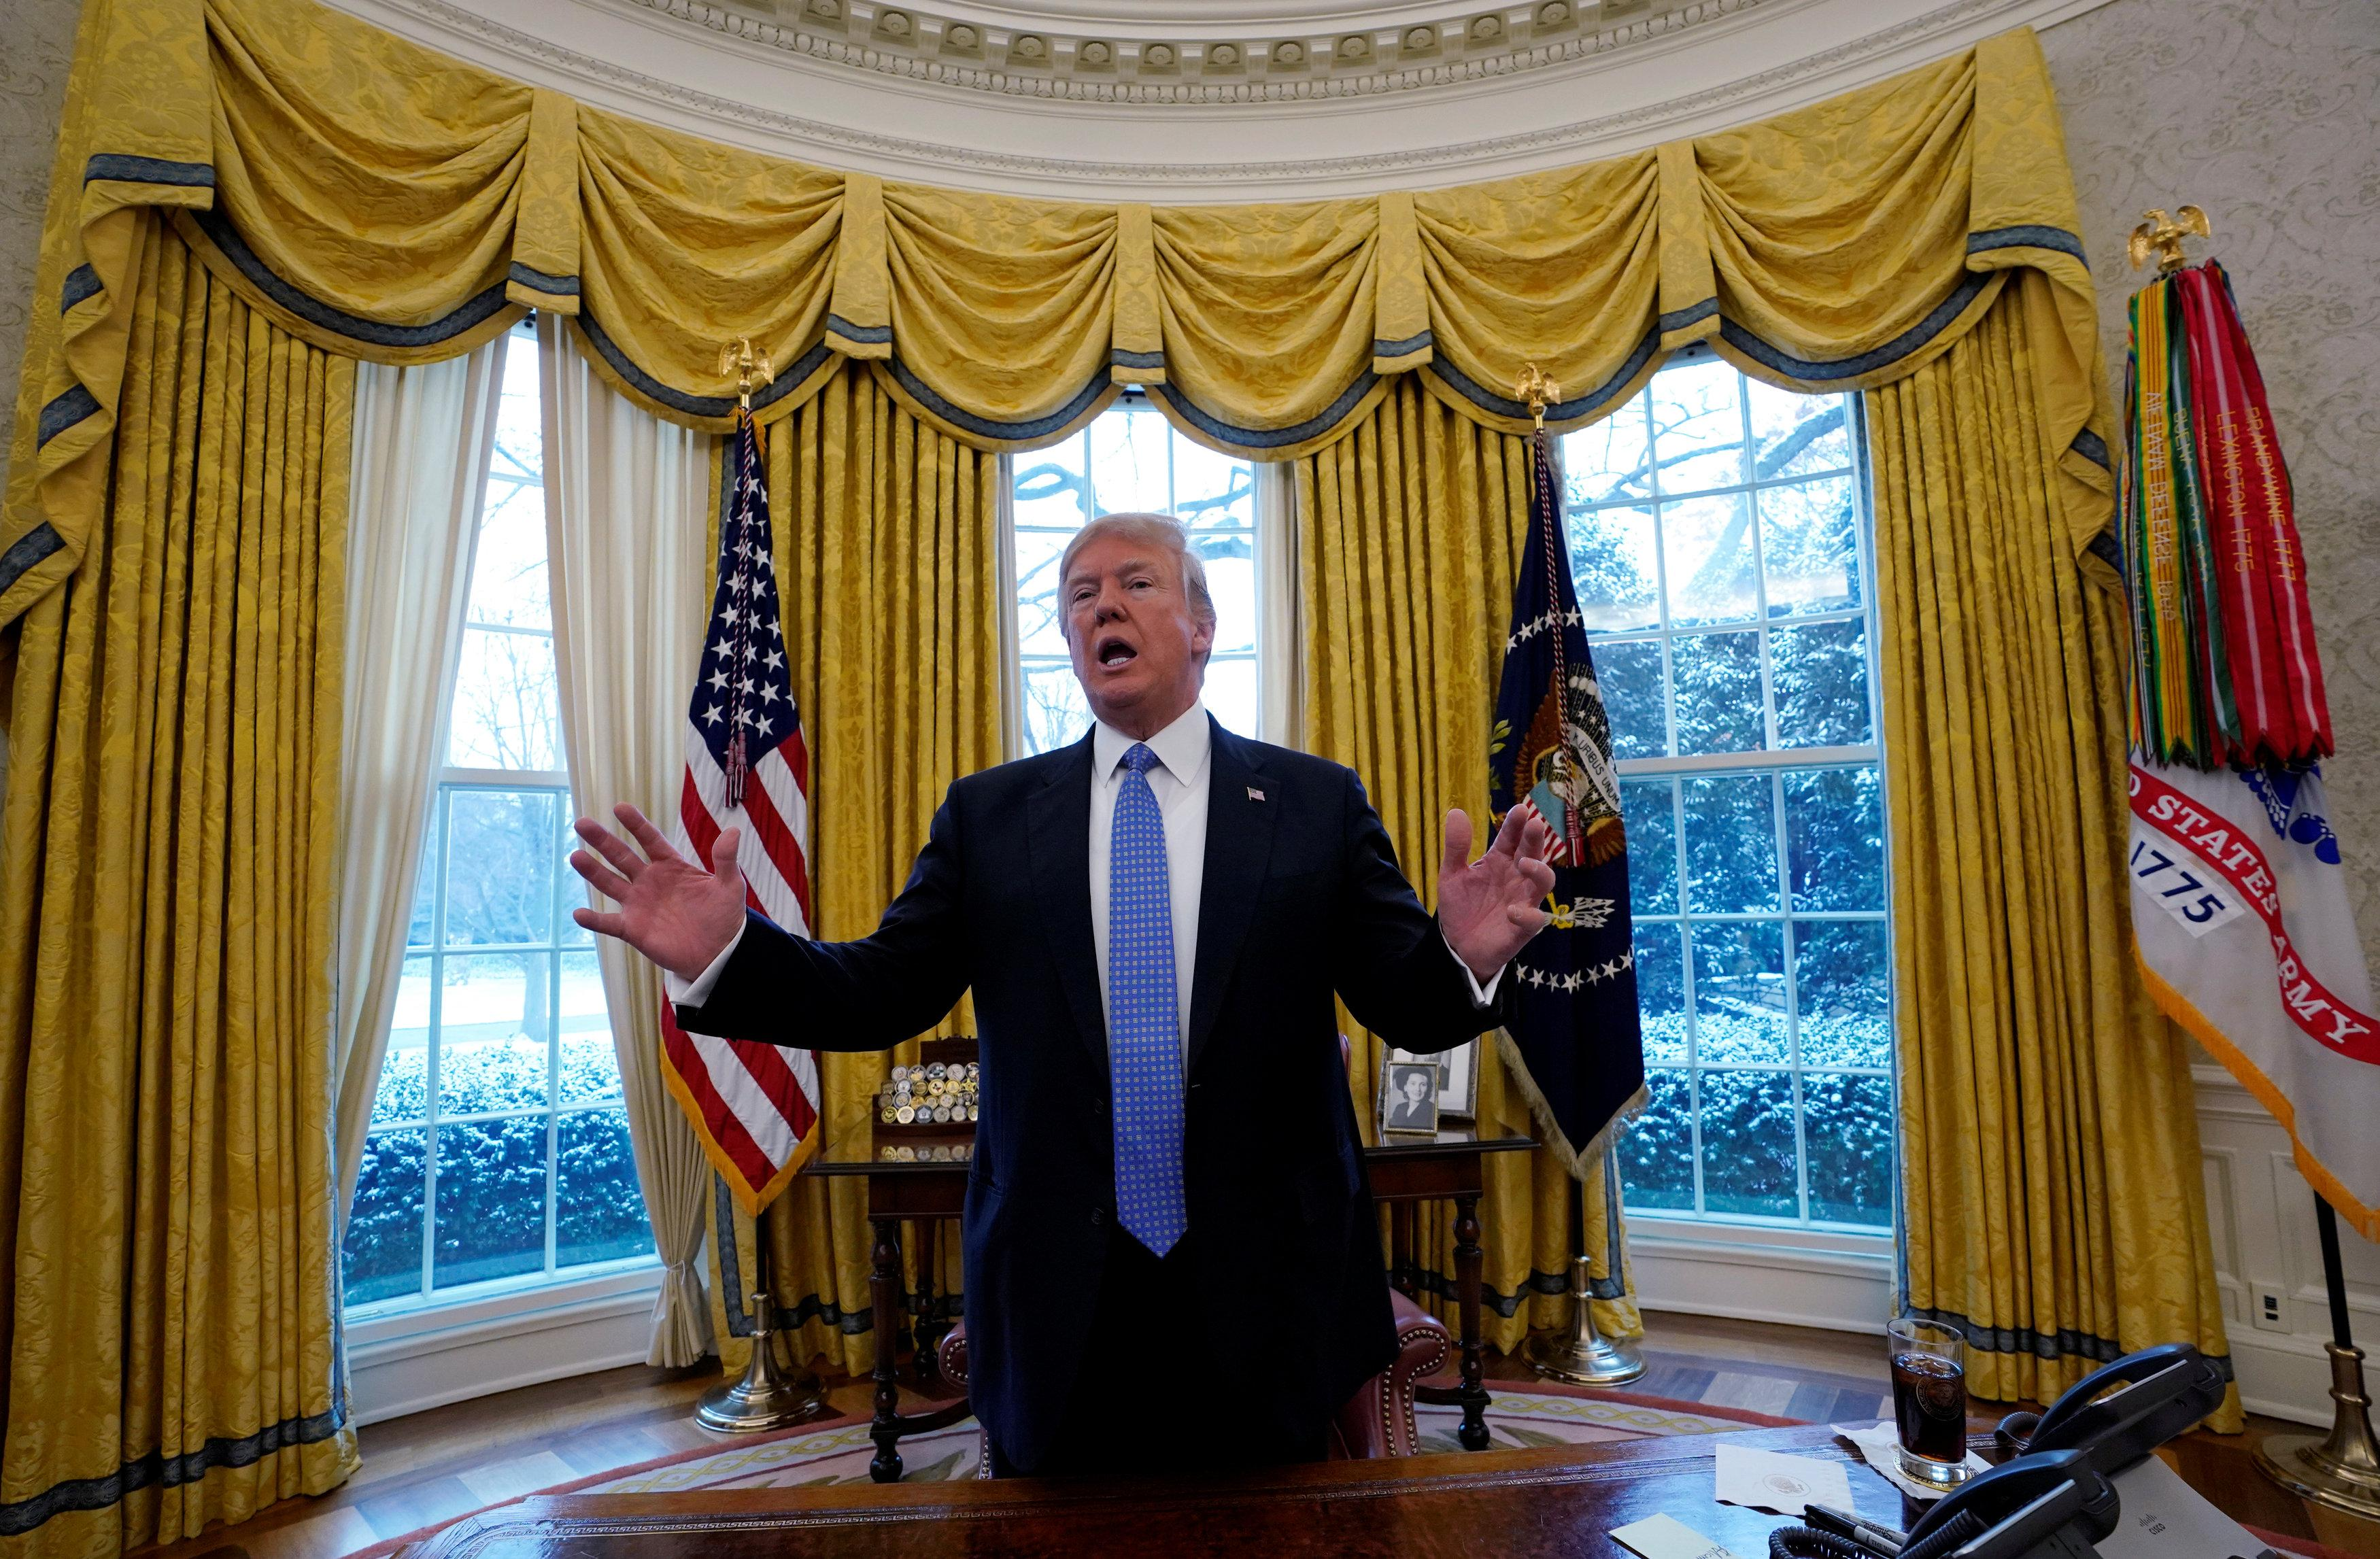 U.S. President Donald Trump speaks during an interview with Reuters at the White House in Washington, U.S., January 17, 2018. Kevin Lamarque